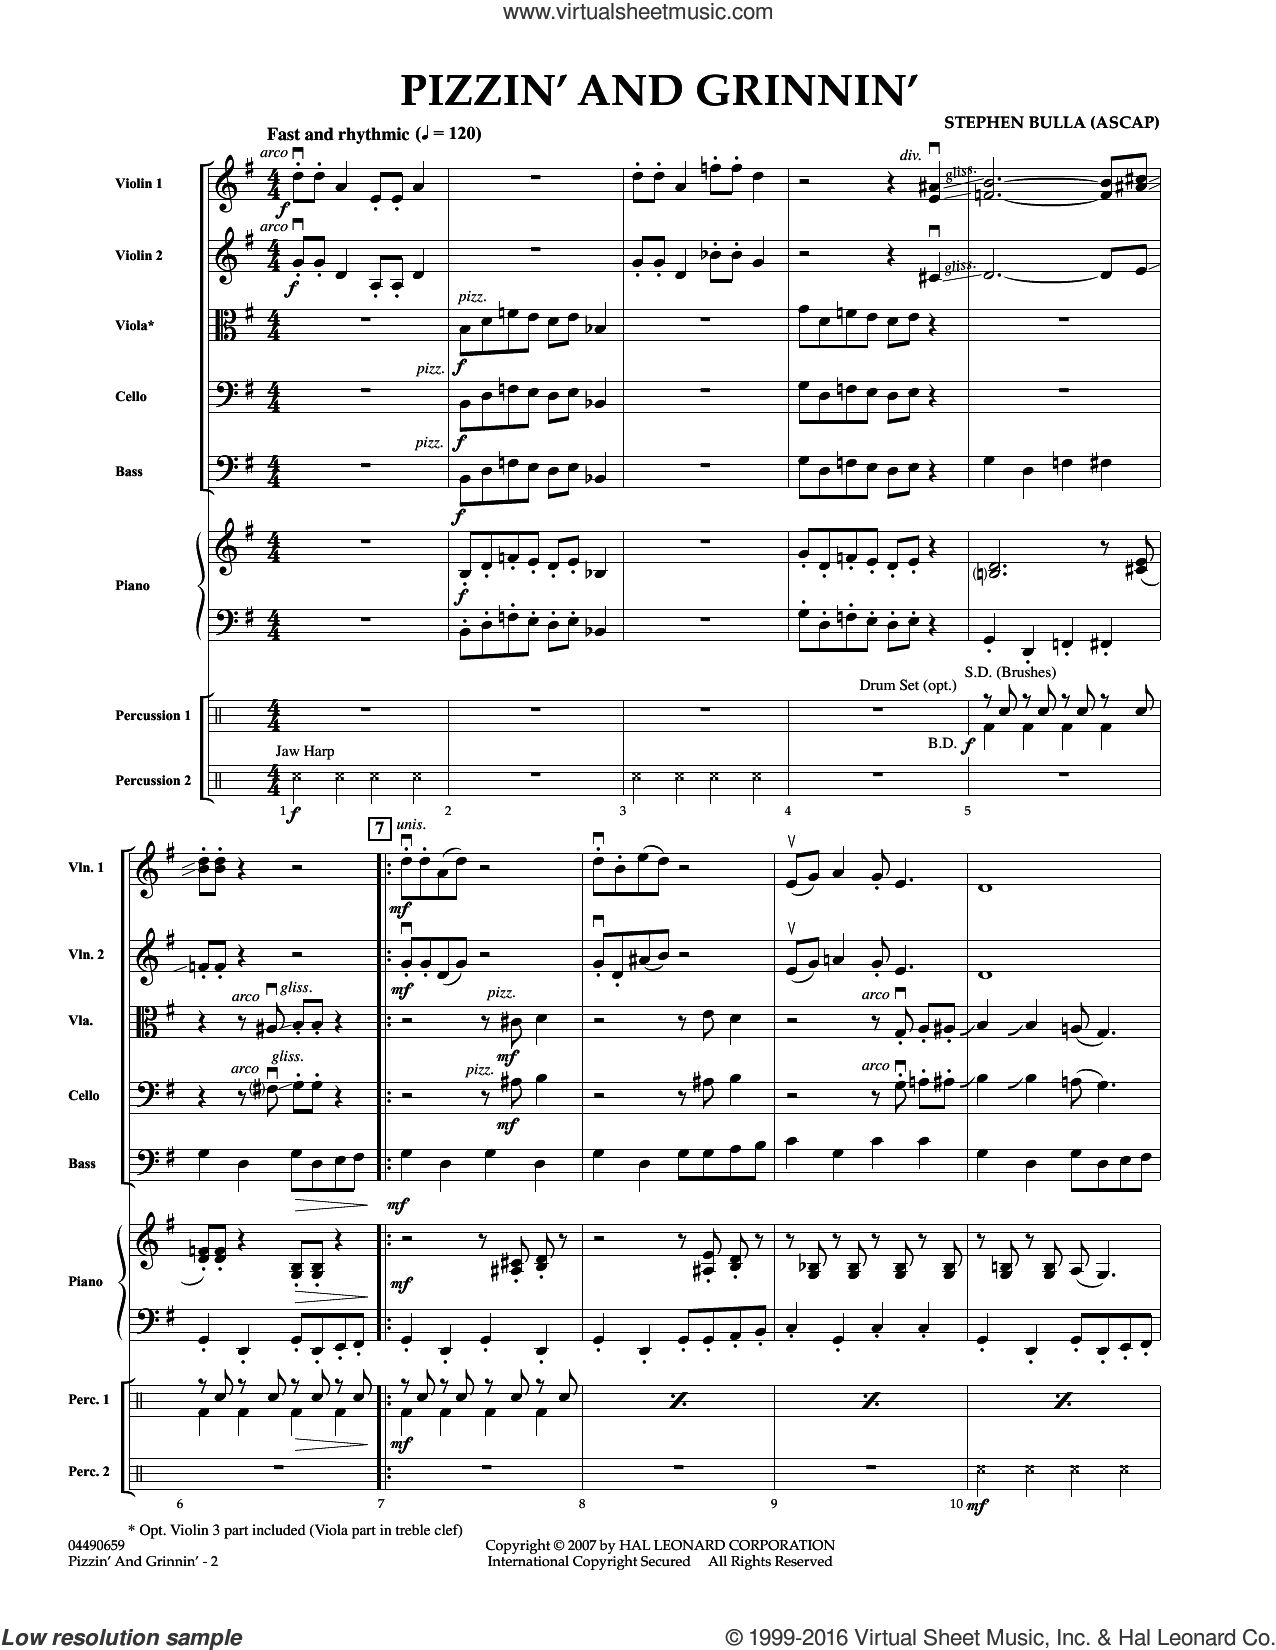 Pizzin' and Grinnin' sheet music for orchestra (full score) by Stephen Bulla, intermediate